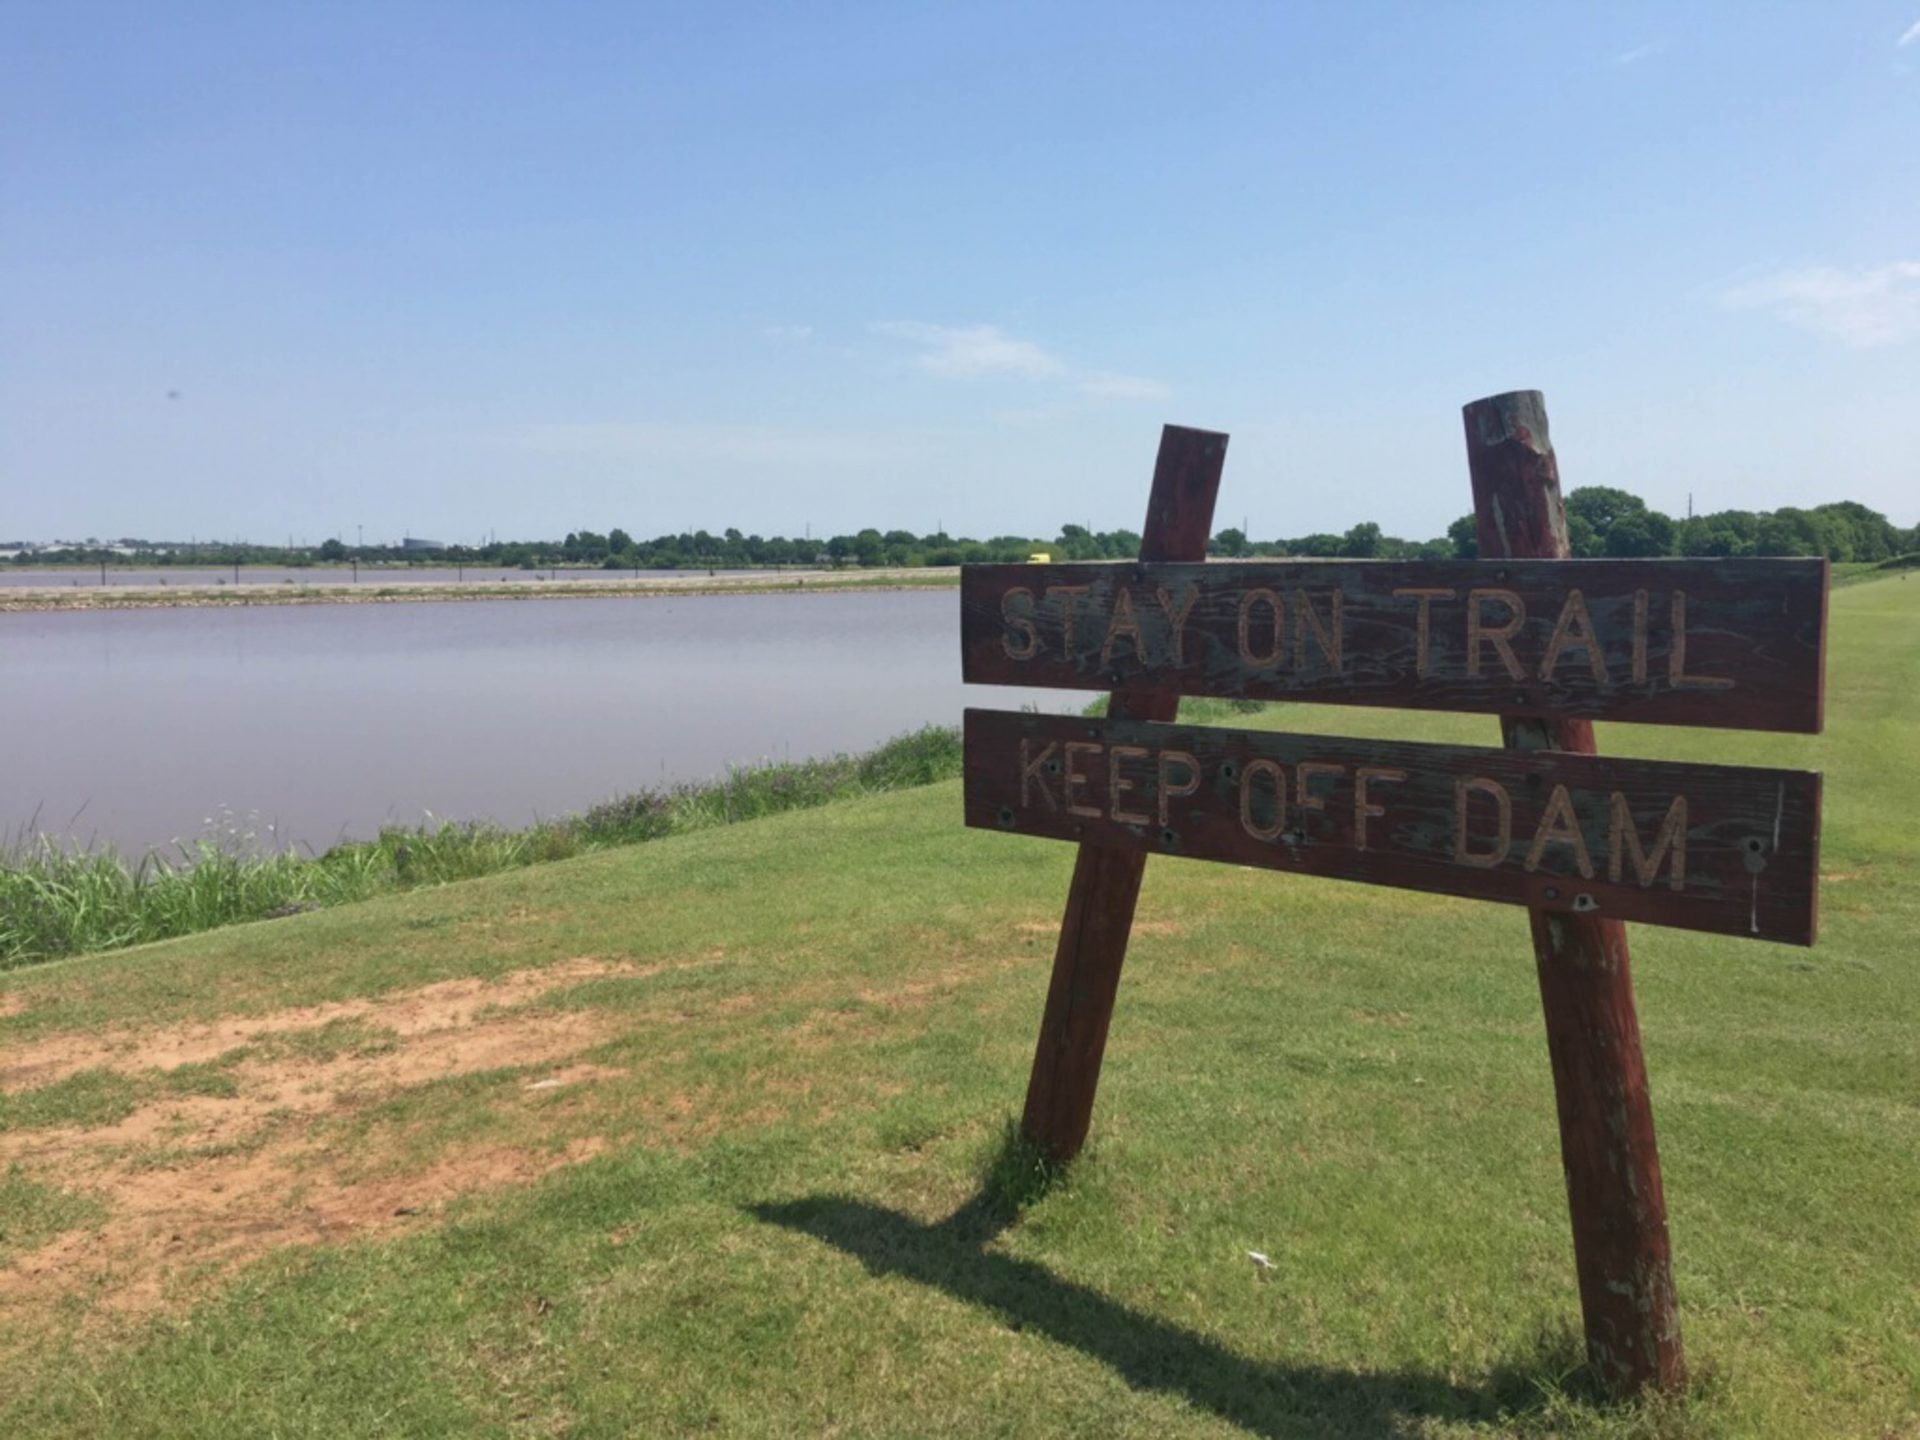 A warning sign posted on a slope in front of the Boomer Dam cautions people not to walk on the dam.